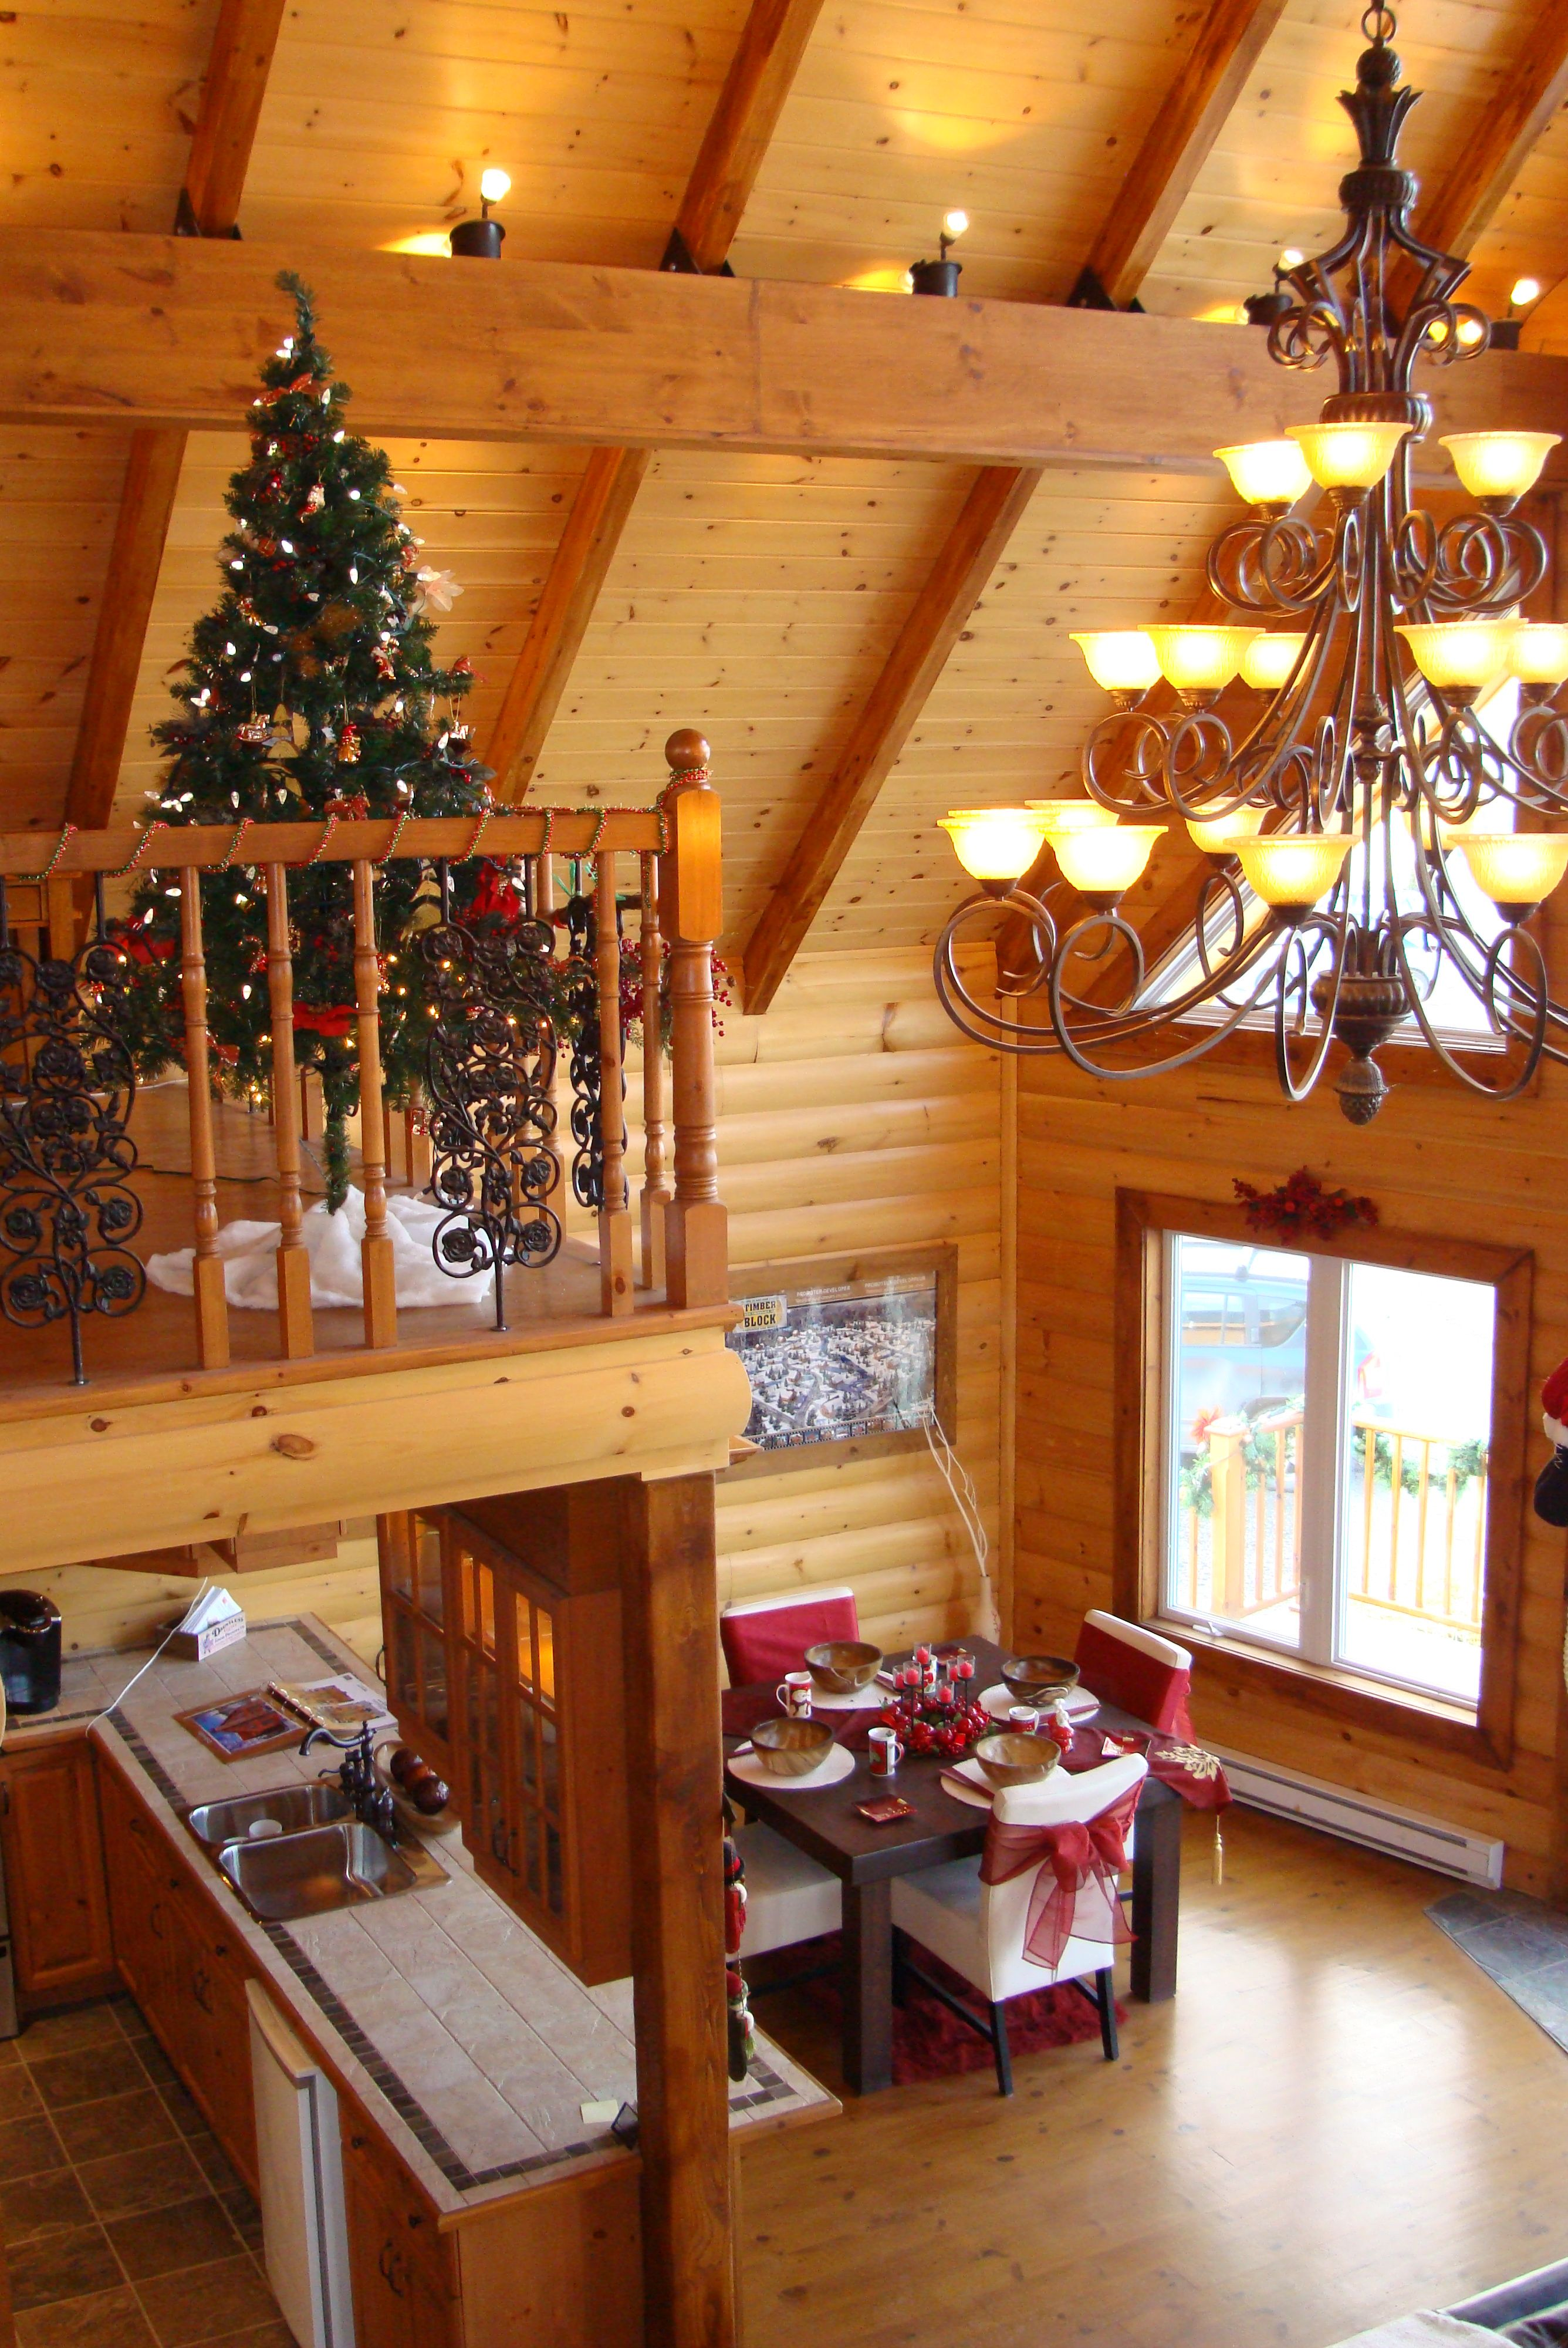 Christmas cabin interior - Everyone Can Agree A Log Home Is Beautiful A Log Home At Christmas Time